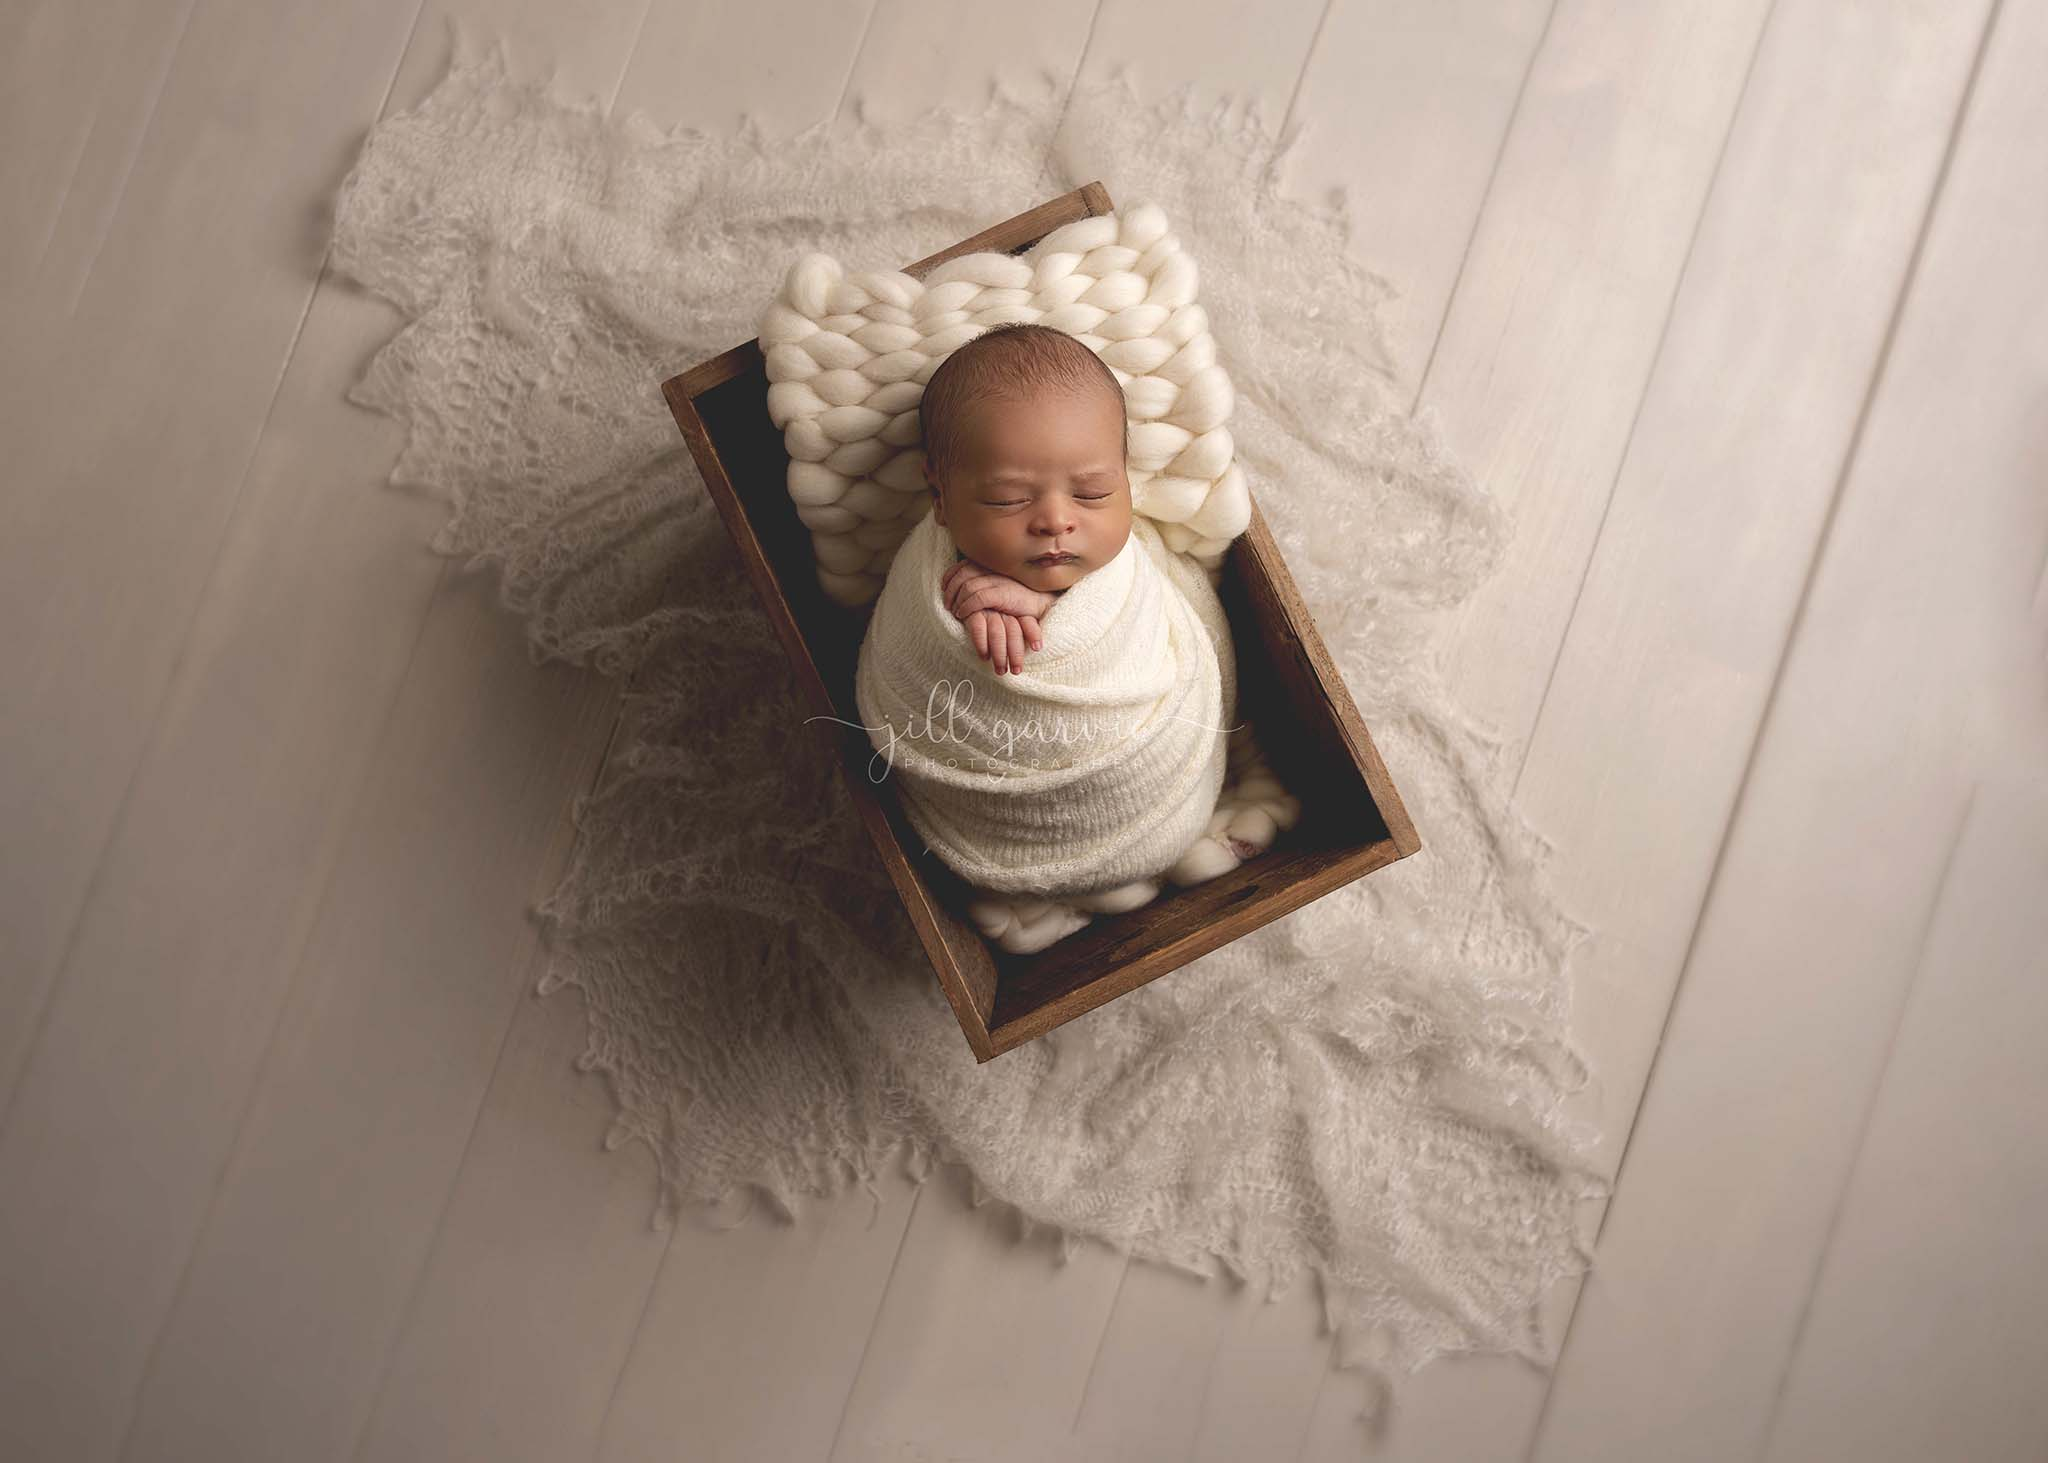 Newborn Photograph Newborn Baby at Jill Garvie Photography Edinburgh